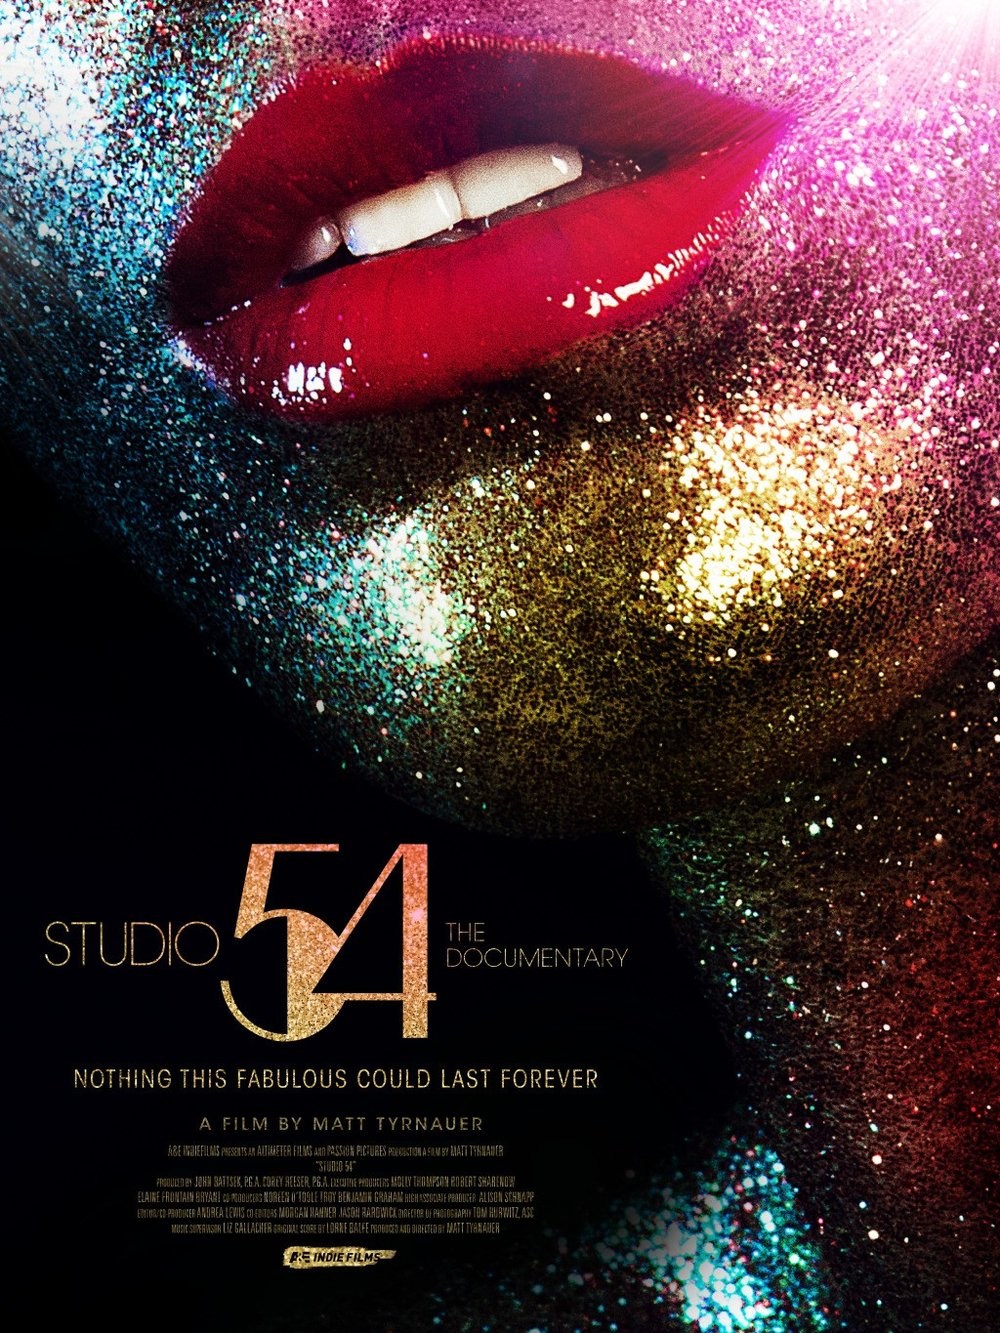 firs-look-at-studio-54-poster-moviemagic.jpg